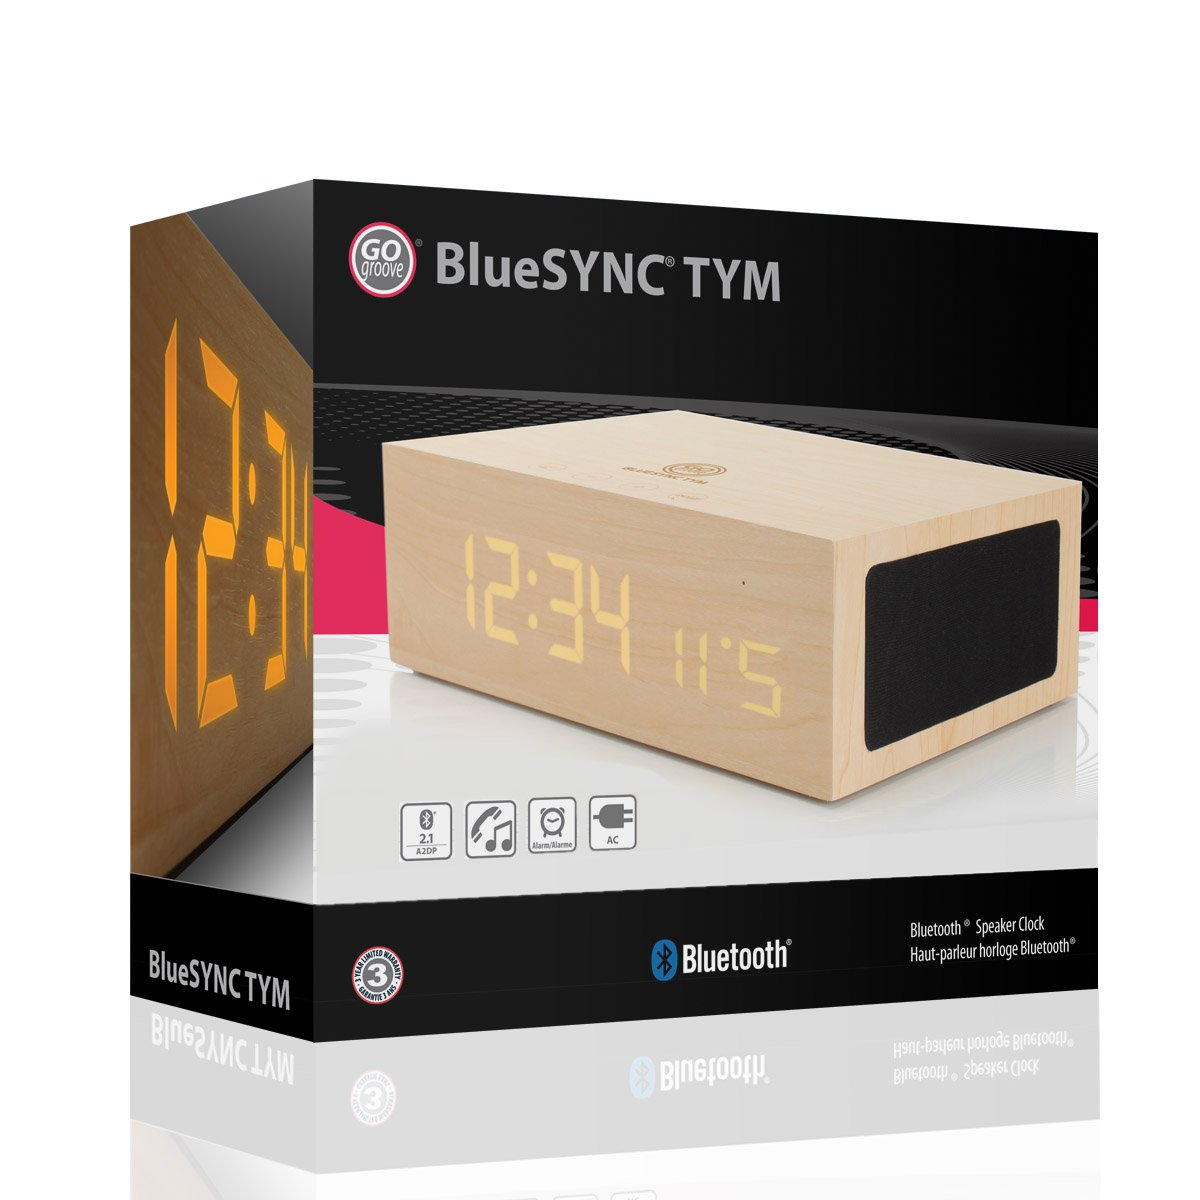 amazoncom gogroove bluesync tym bluetooth wireless stereo speaker wooden alarm clock w led time temperature display for phones mp3 players tablets acer friends wooden classic